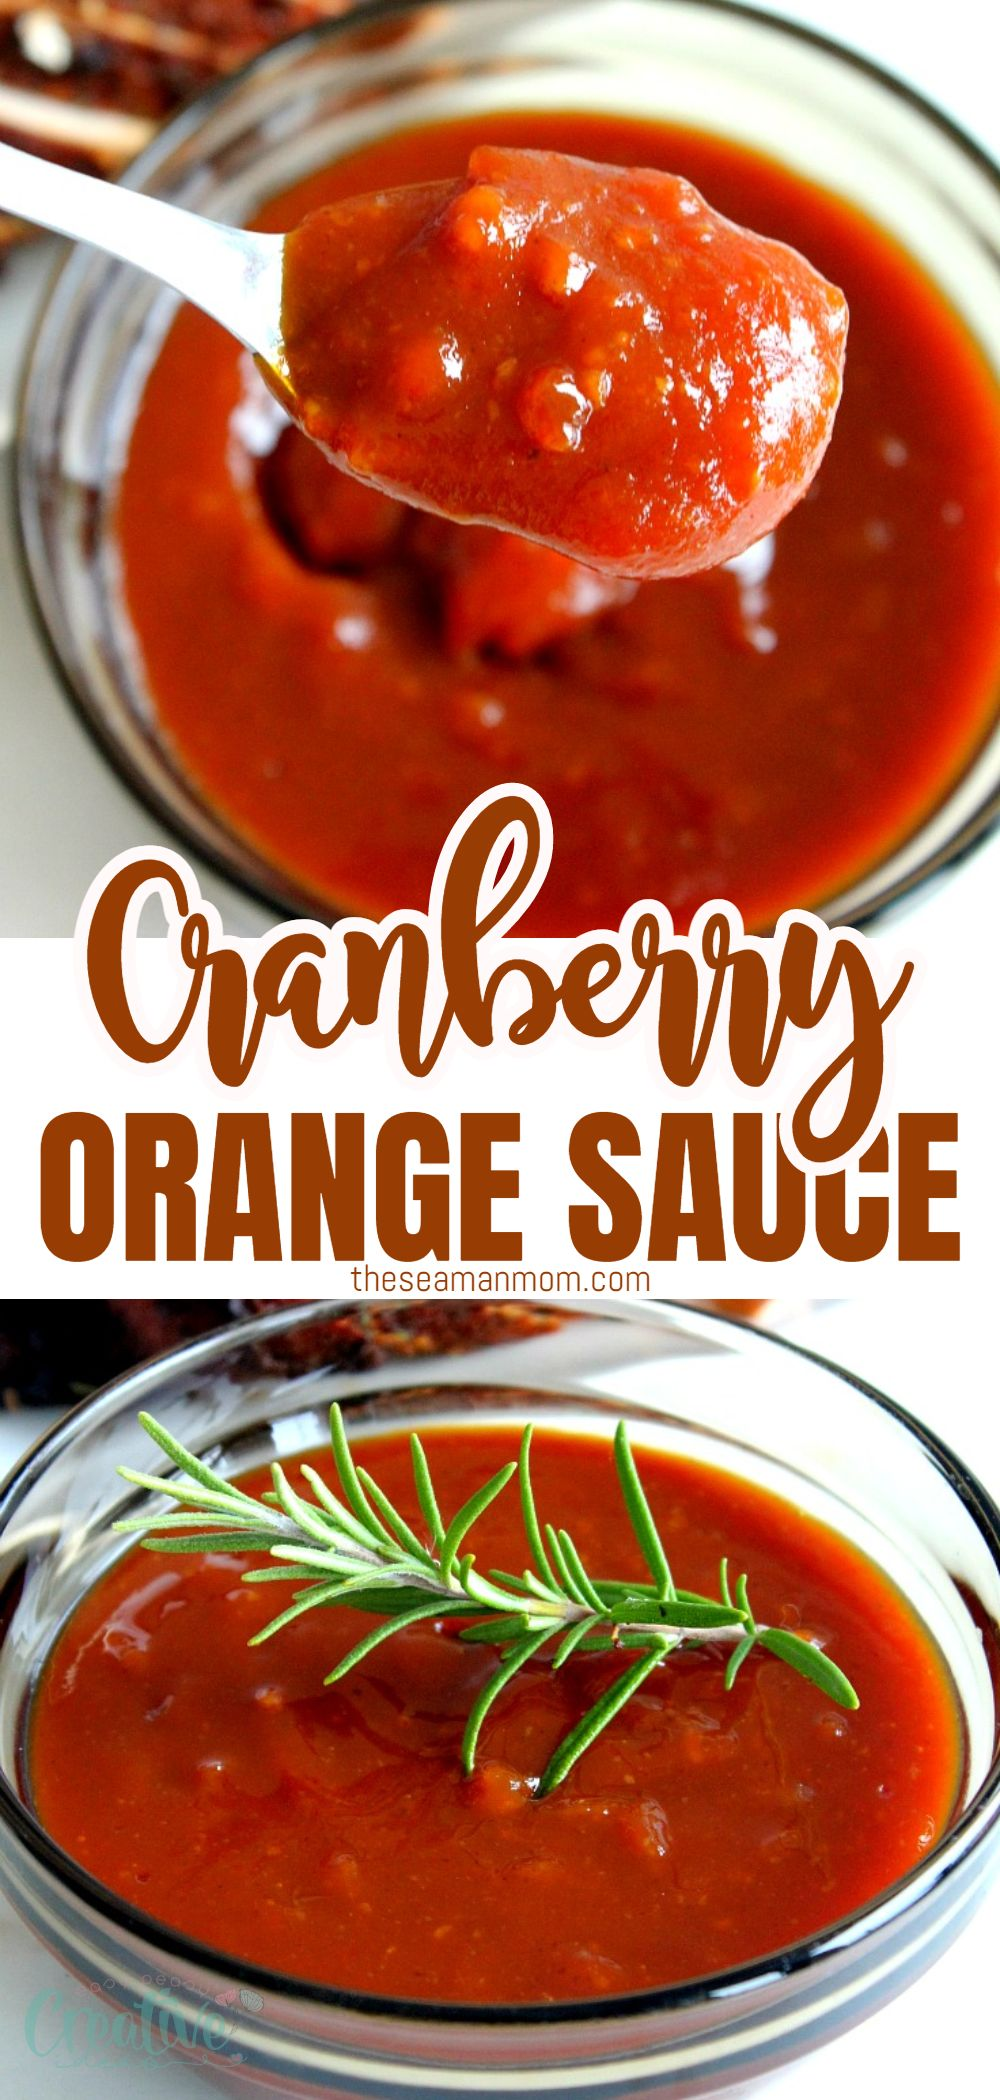 Enjoy this delicious cranberry orange sauce recipe at your Thanksgiving dinner! It makes the perfectaccompaniment for your brined roasted turkey! via @petroneagu